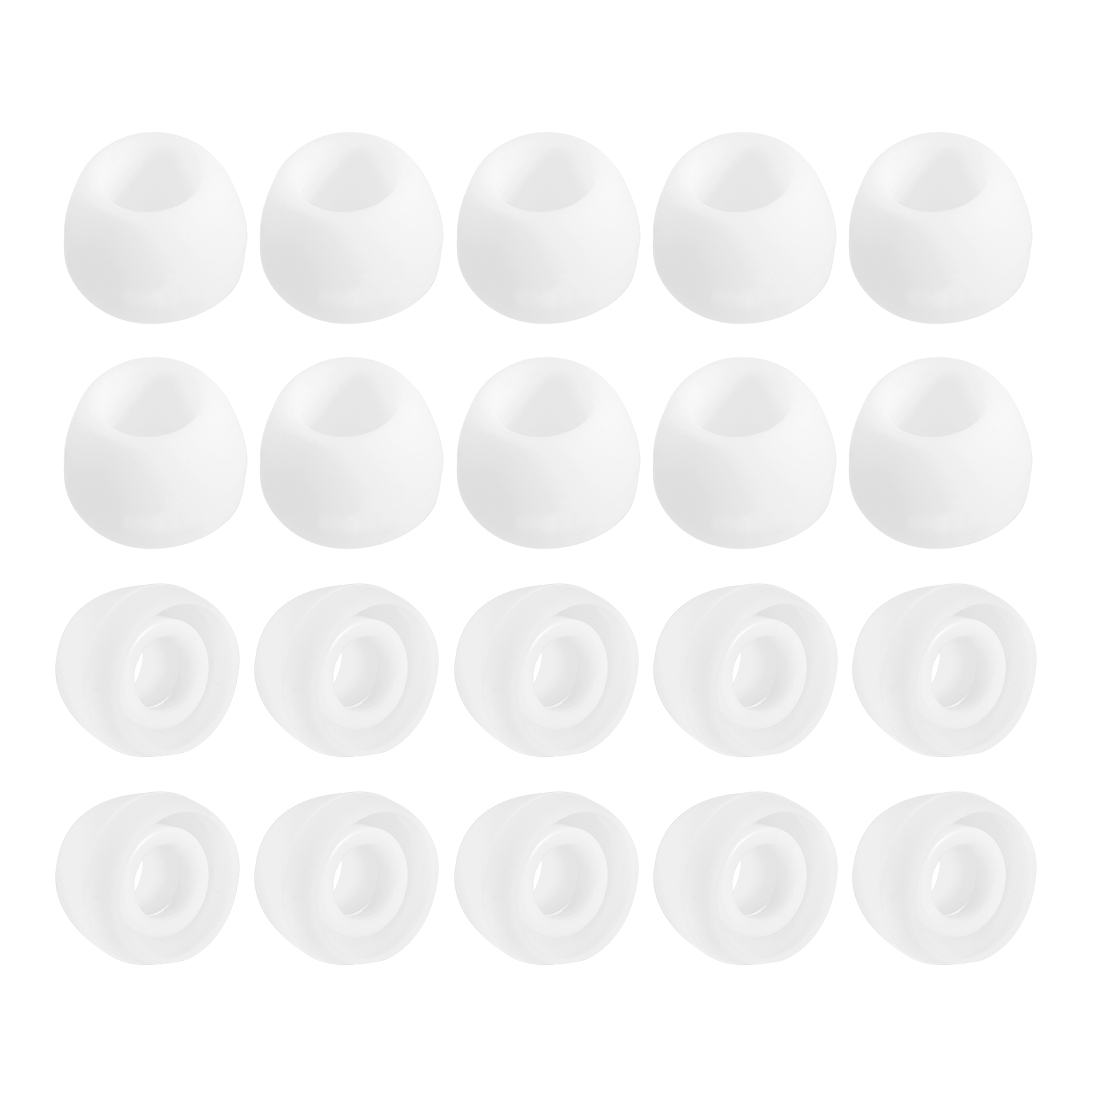 4.5mm IDx10mm OD Silicone Earbud Tips for Volume OD 4.5-6mm, White 10 Pair